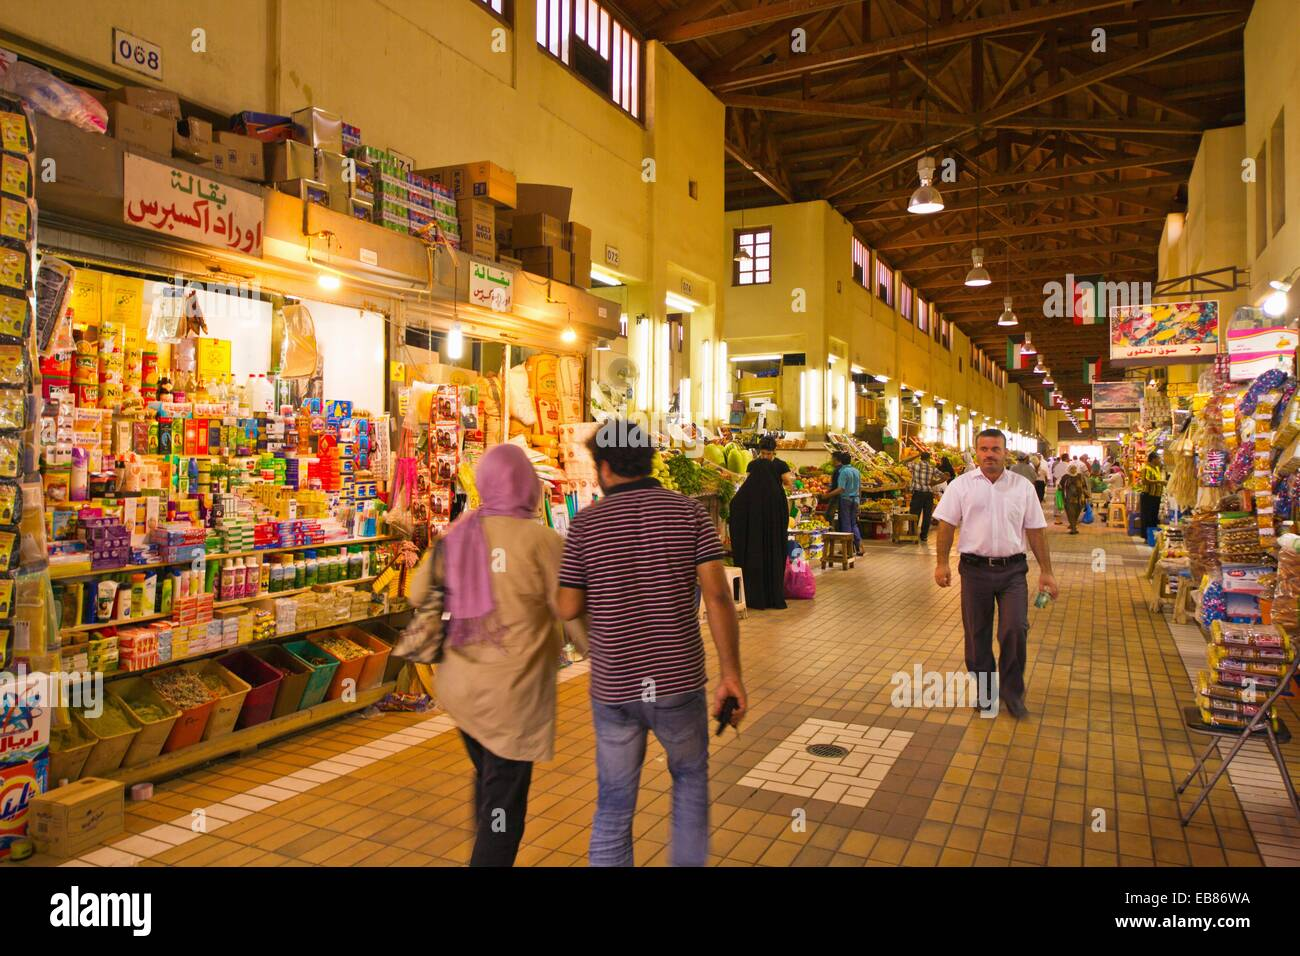 Old Souq,local market in Kuwait city Stock Photo: 75783718 - Alamy